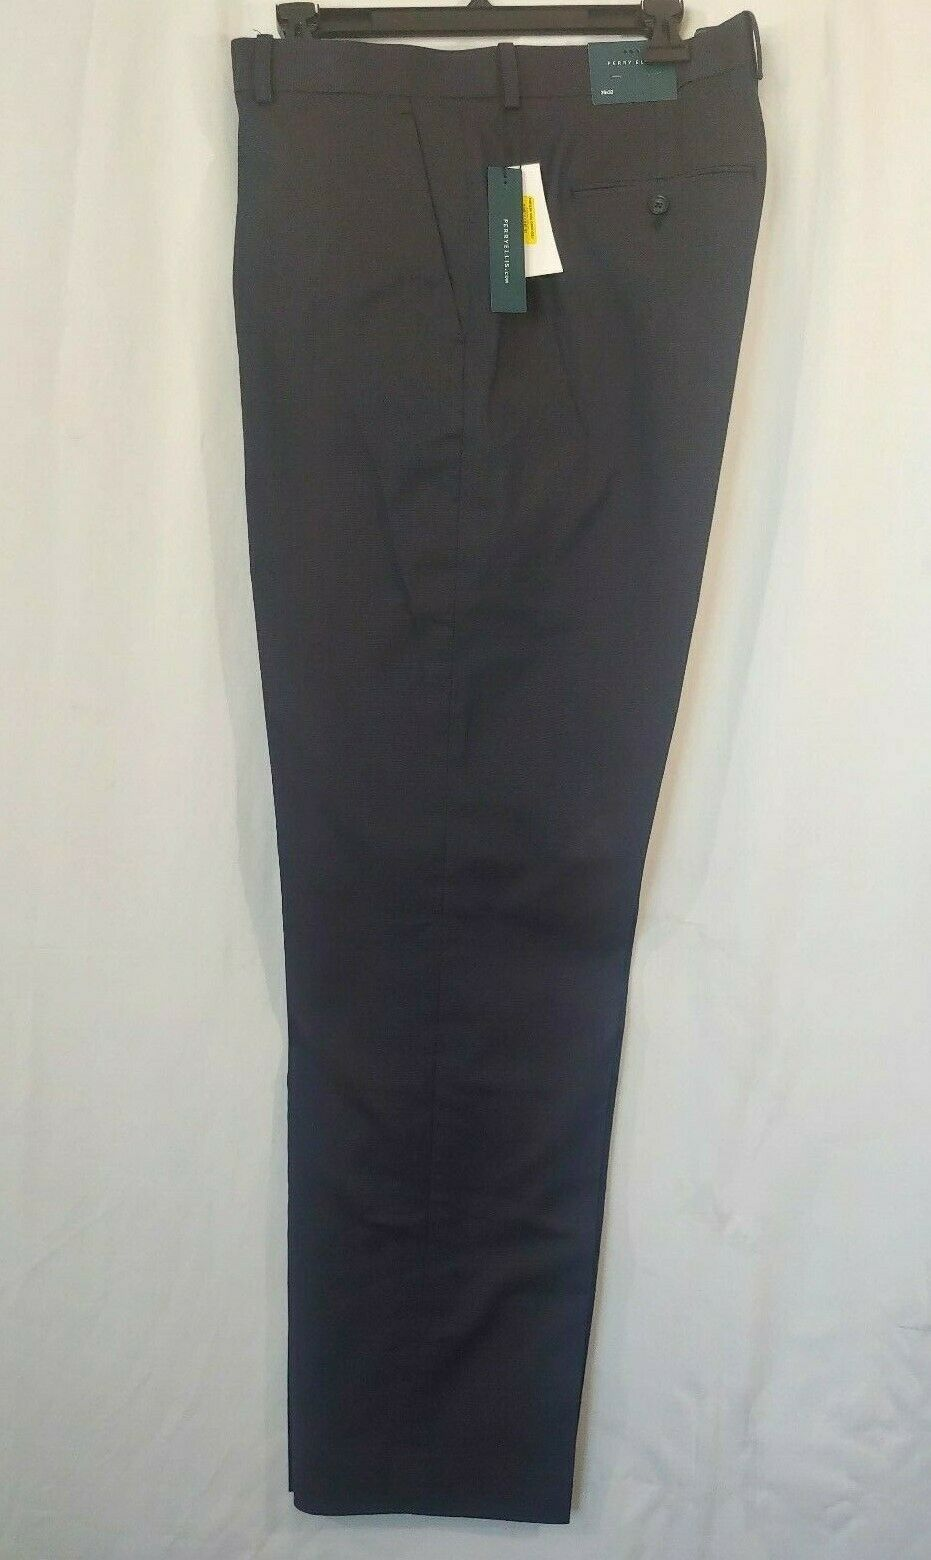 NWT Perry Ellis Dressy Essentials Navy Dress Pants - Men's 38 x 32